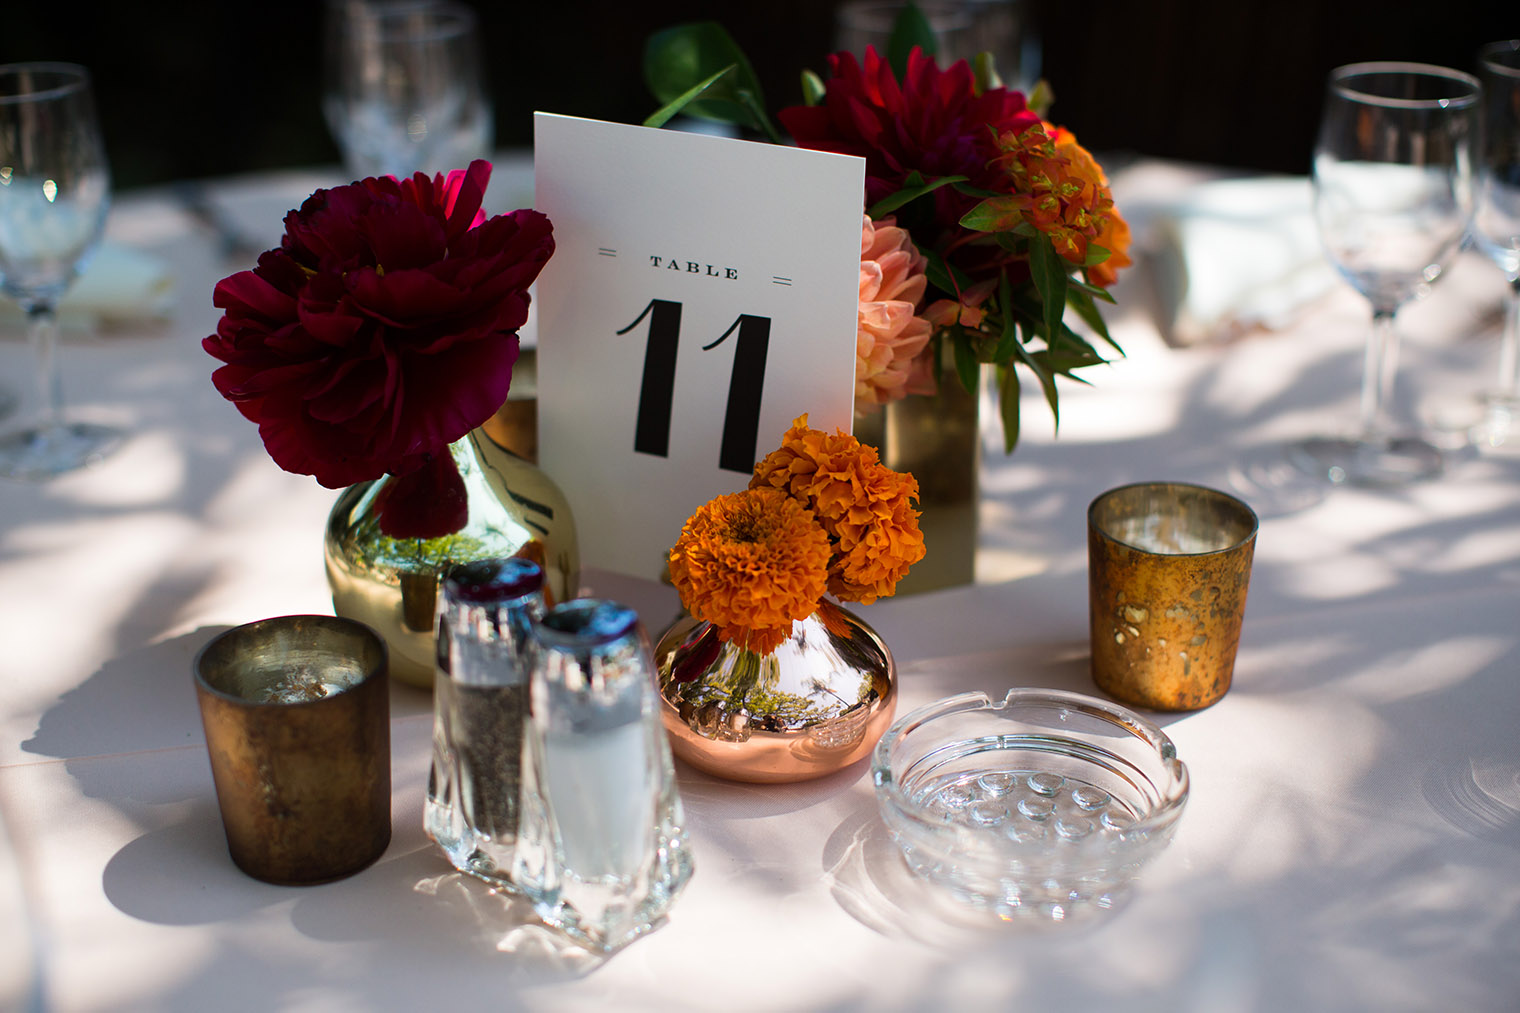 Happy Trails Cafe & Garden wedding details